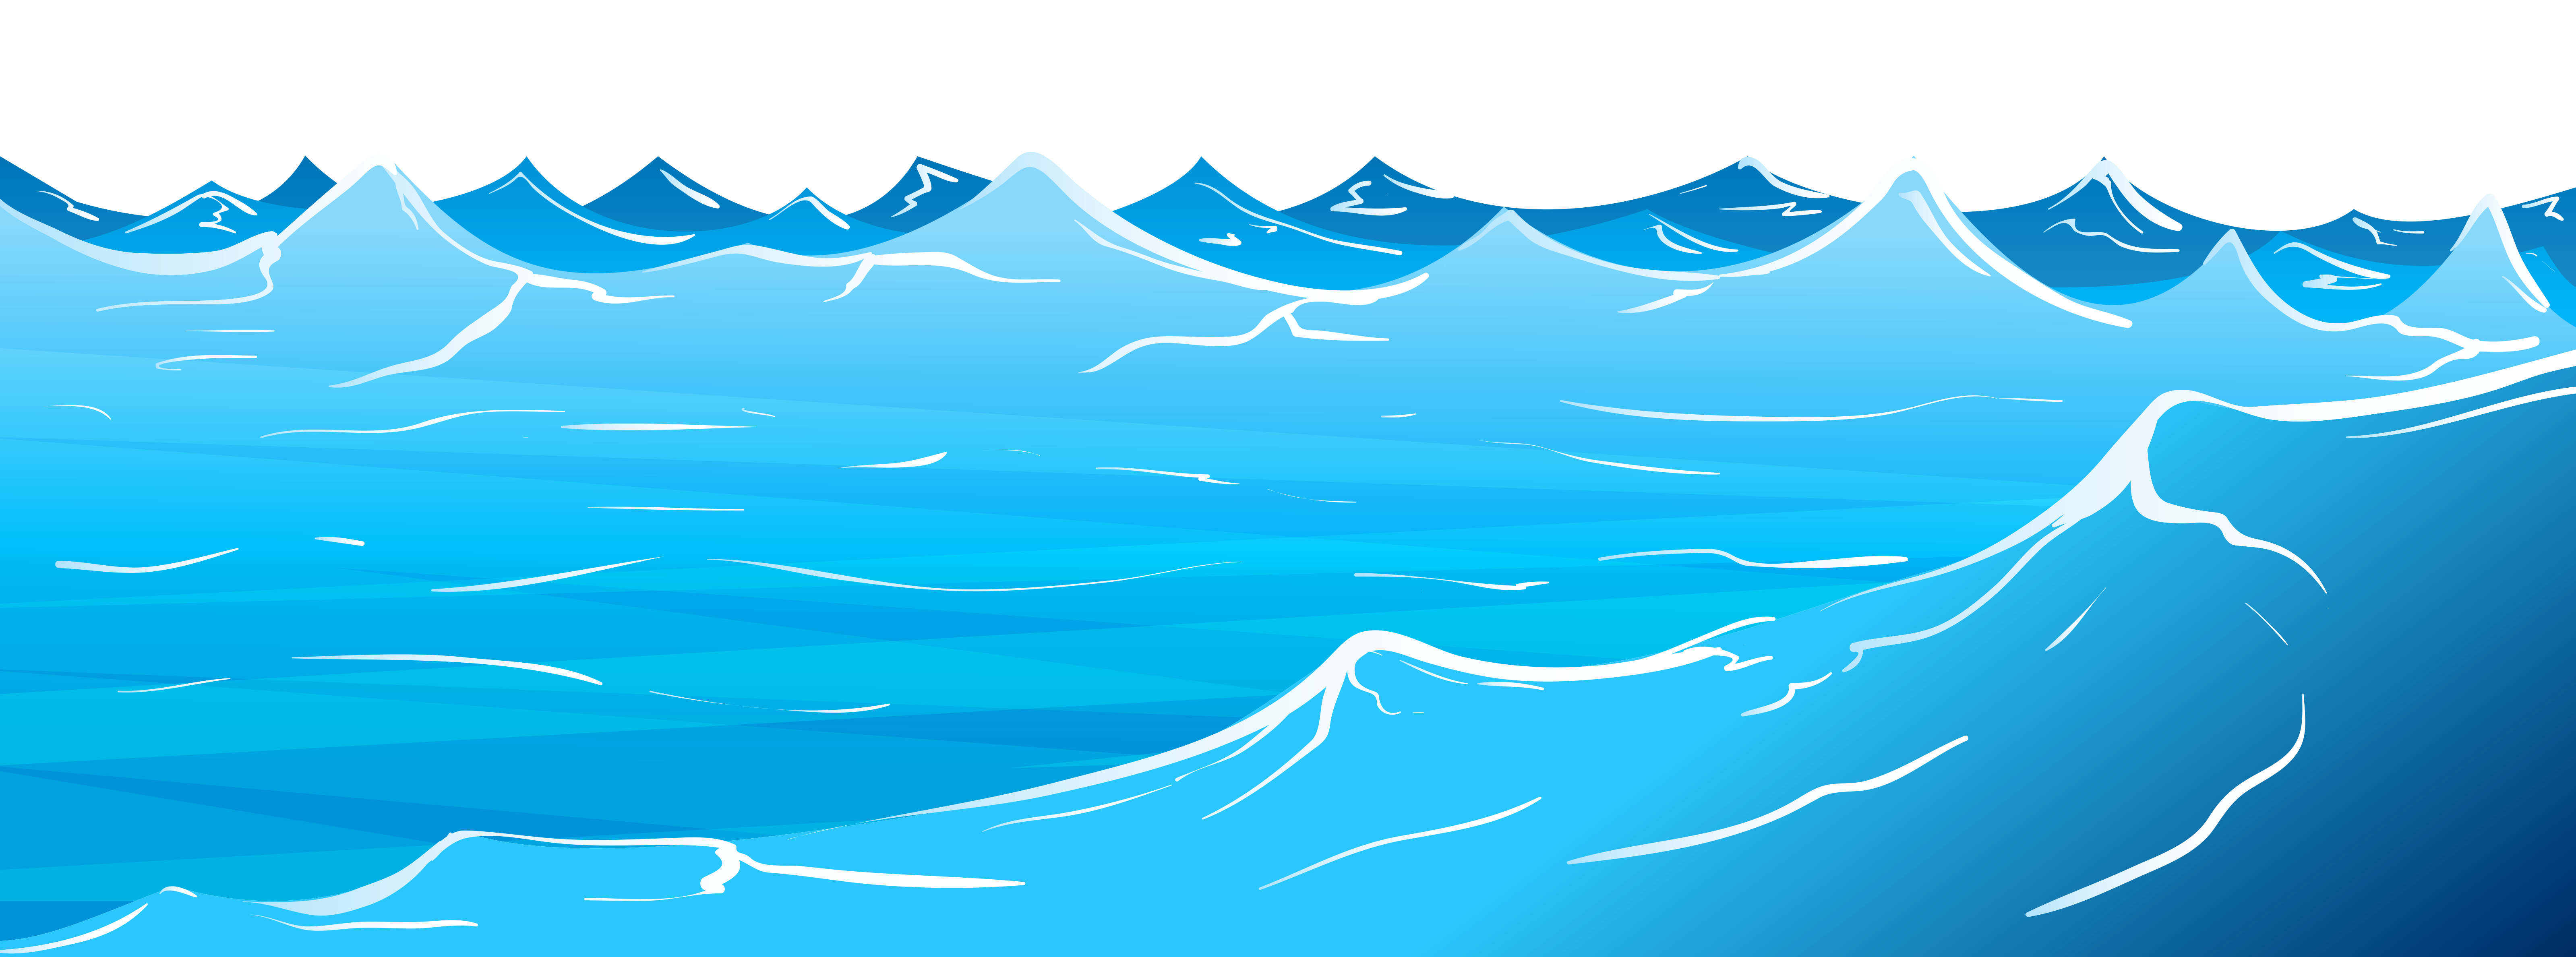 Ocean waves clipart free clipart images gallery for free.